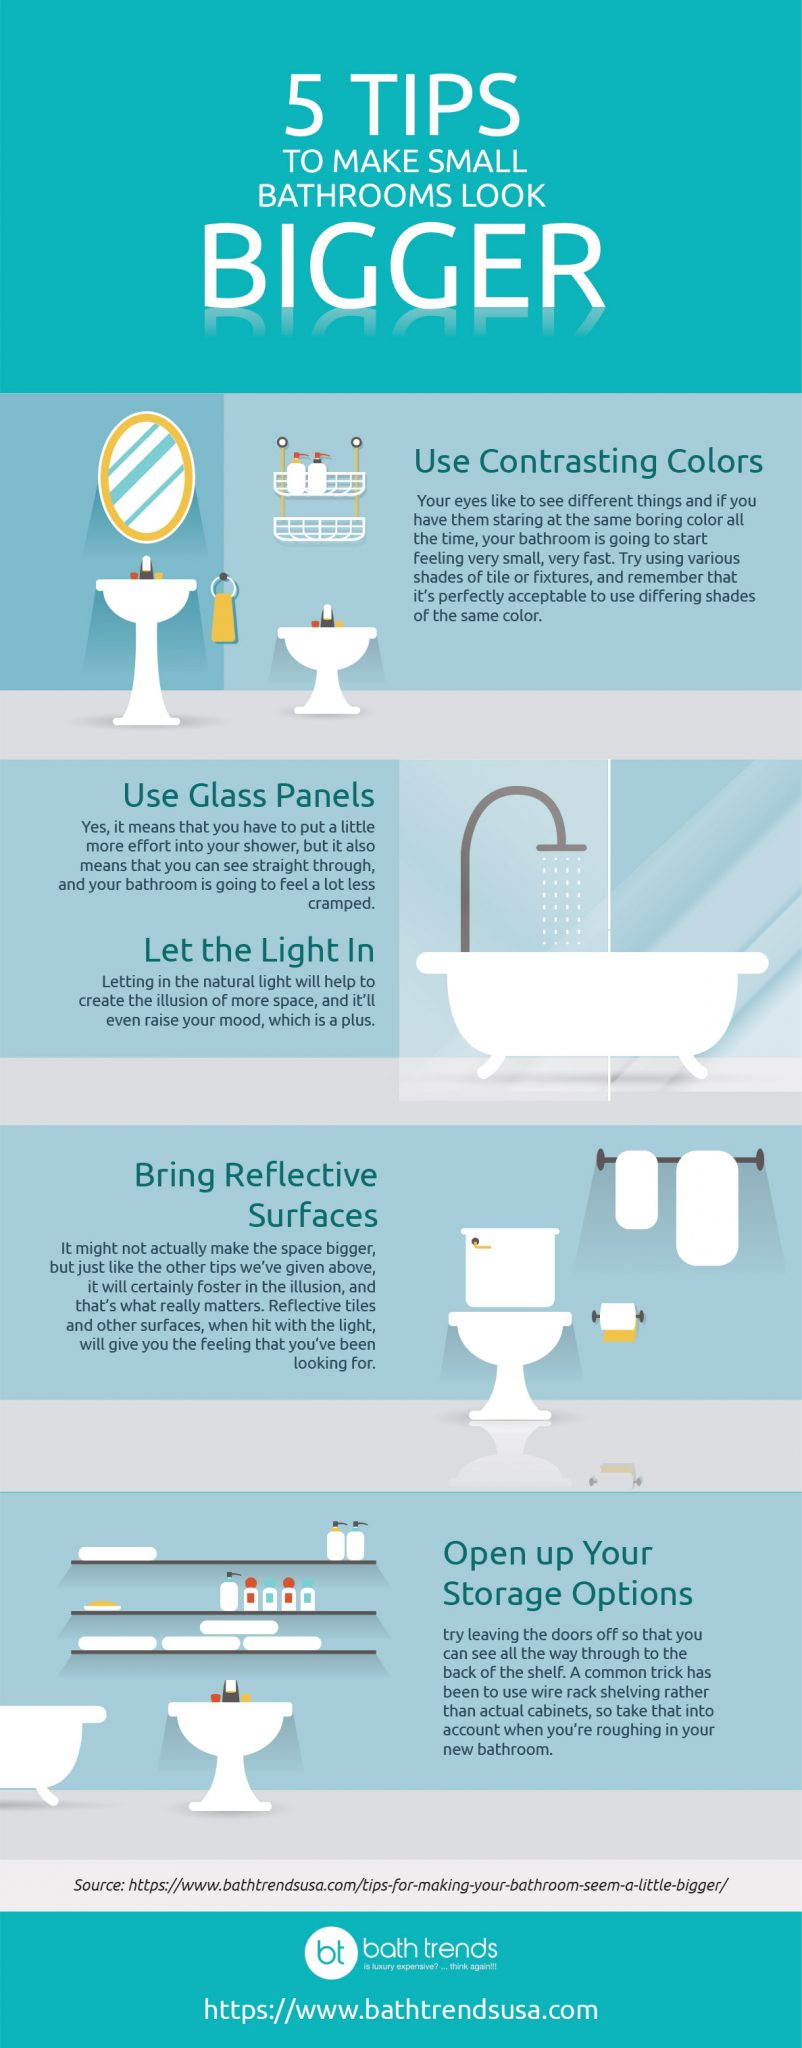 5-tips_bathroom-infographic-plaza